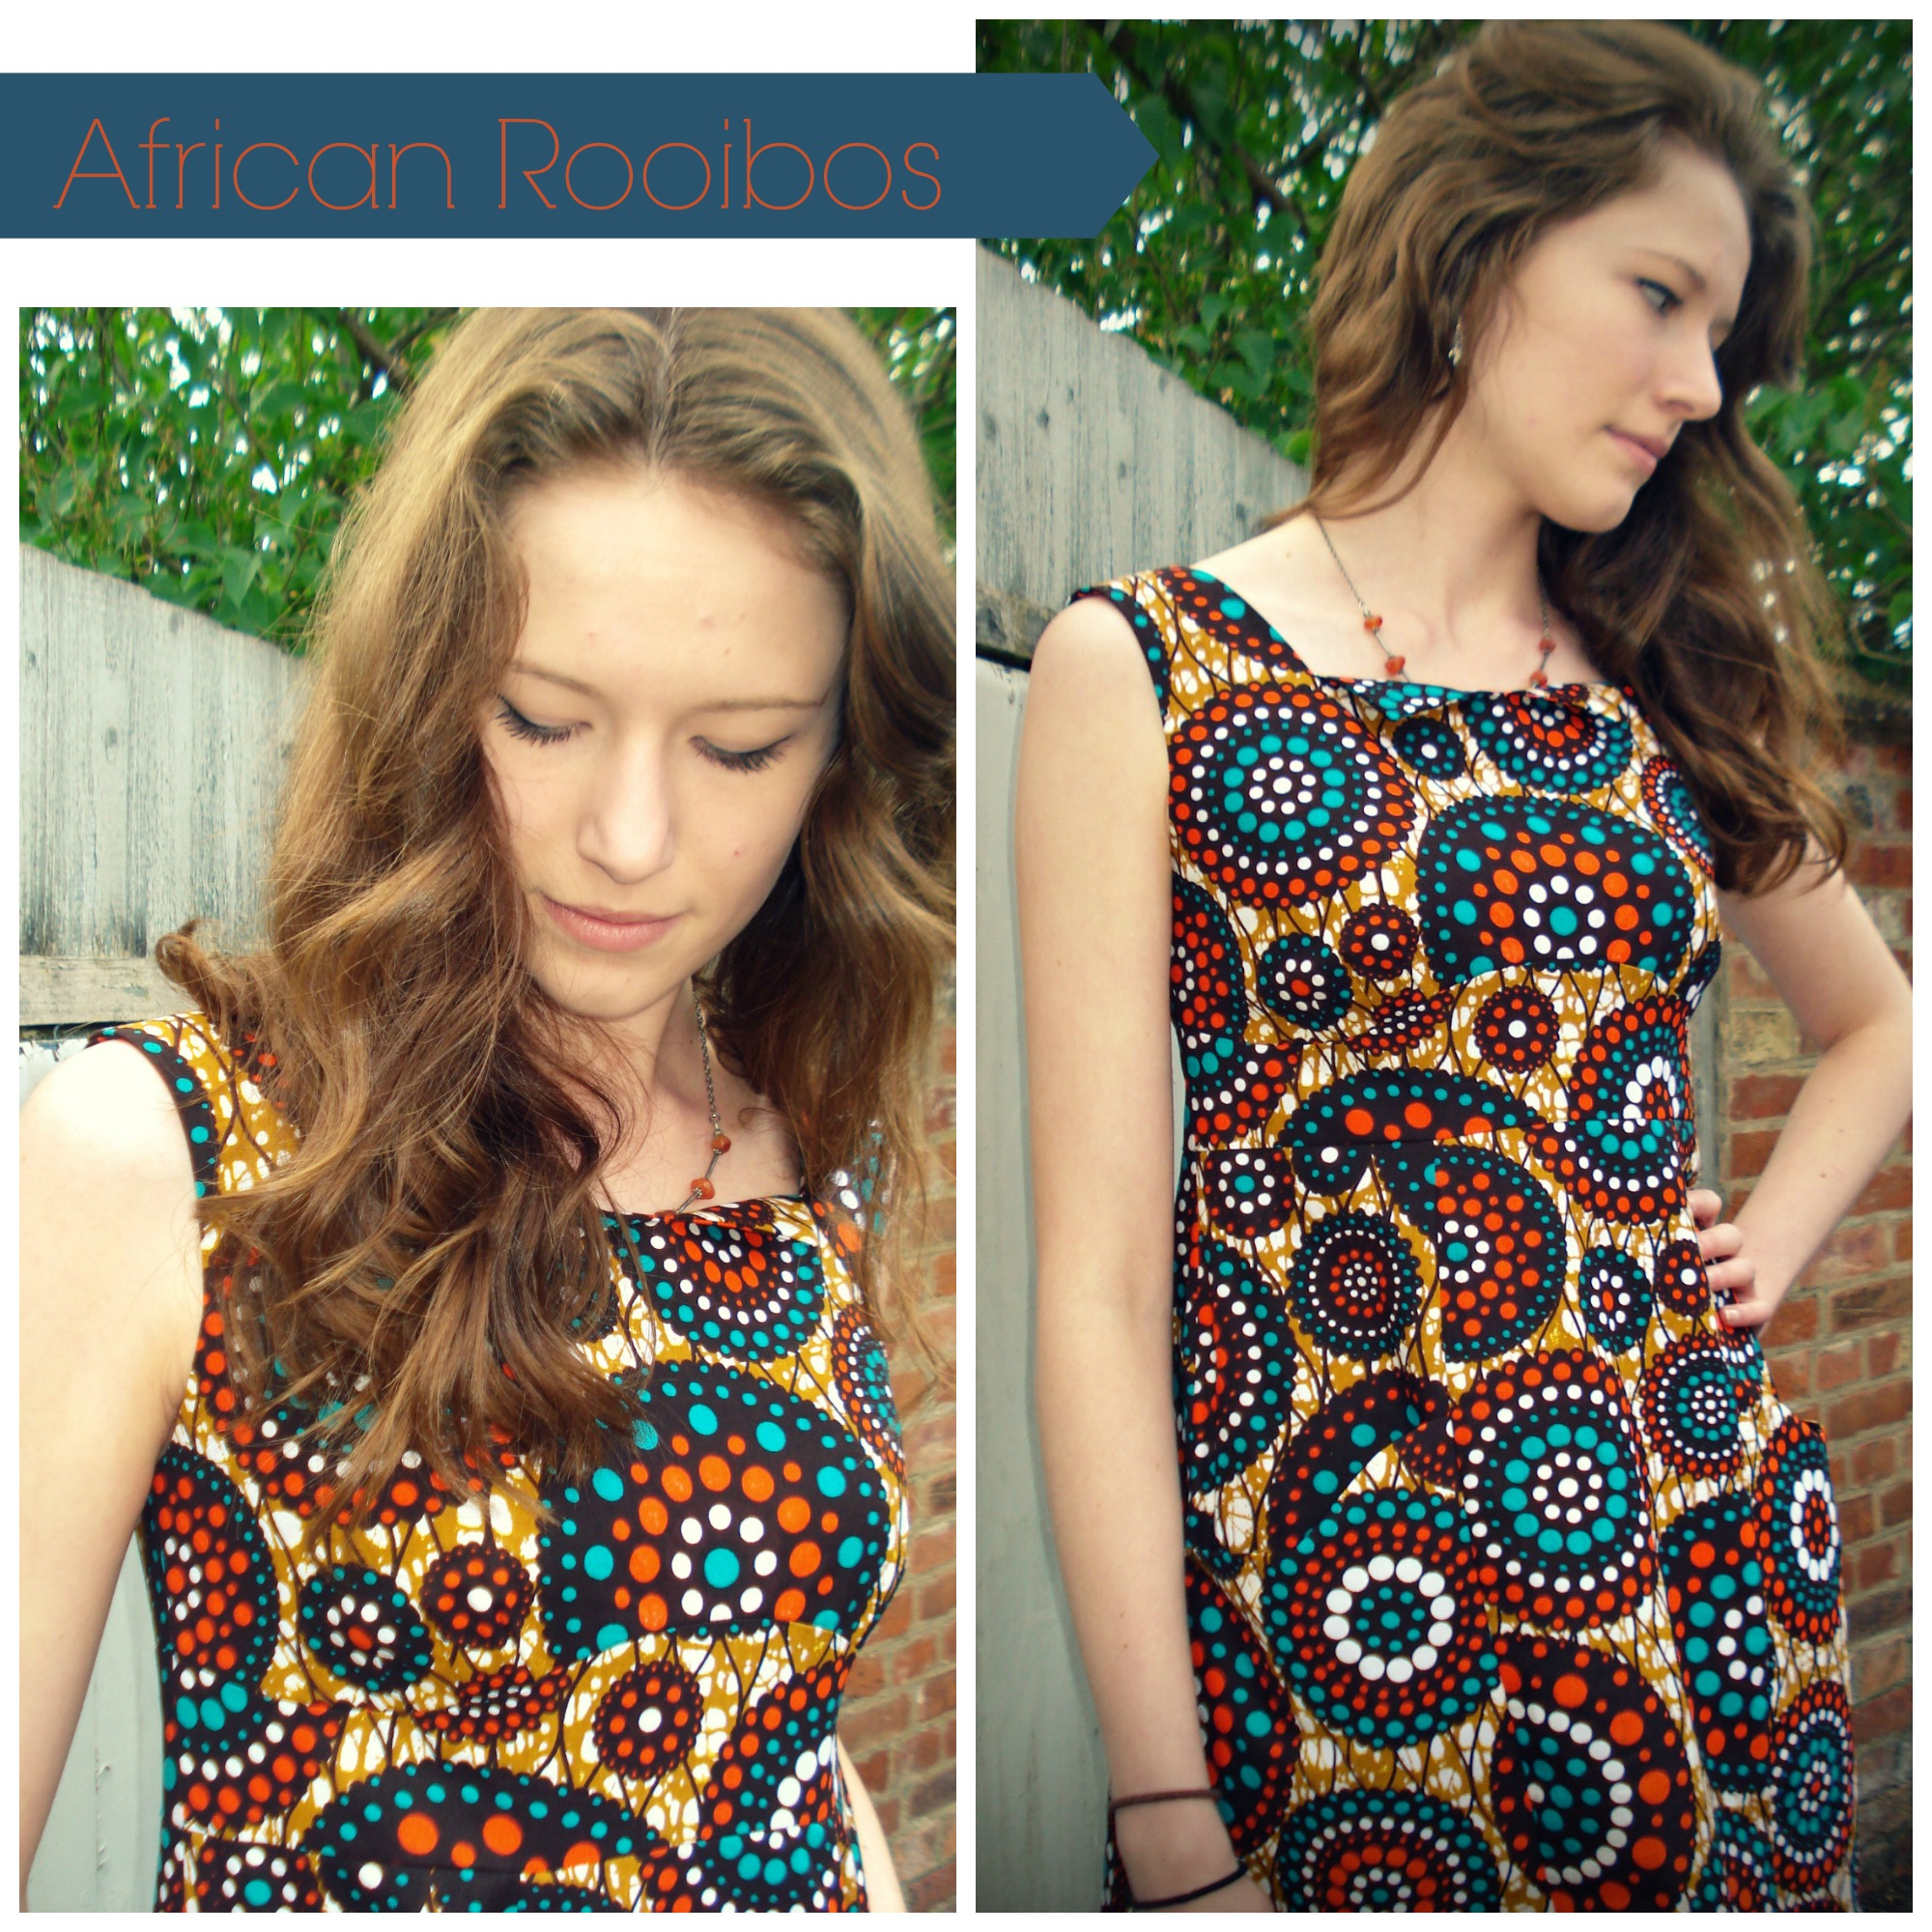 a967f347b0 A Rooibos Dress in African Print – THE COMPULSIVE SEAMSTRESS